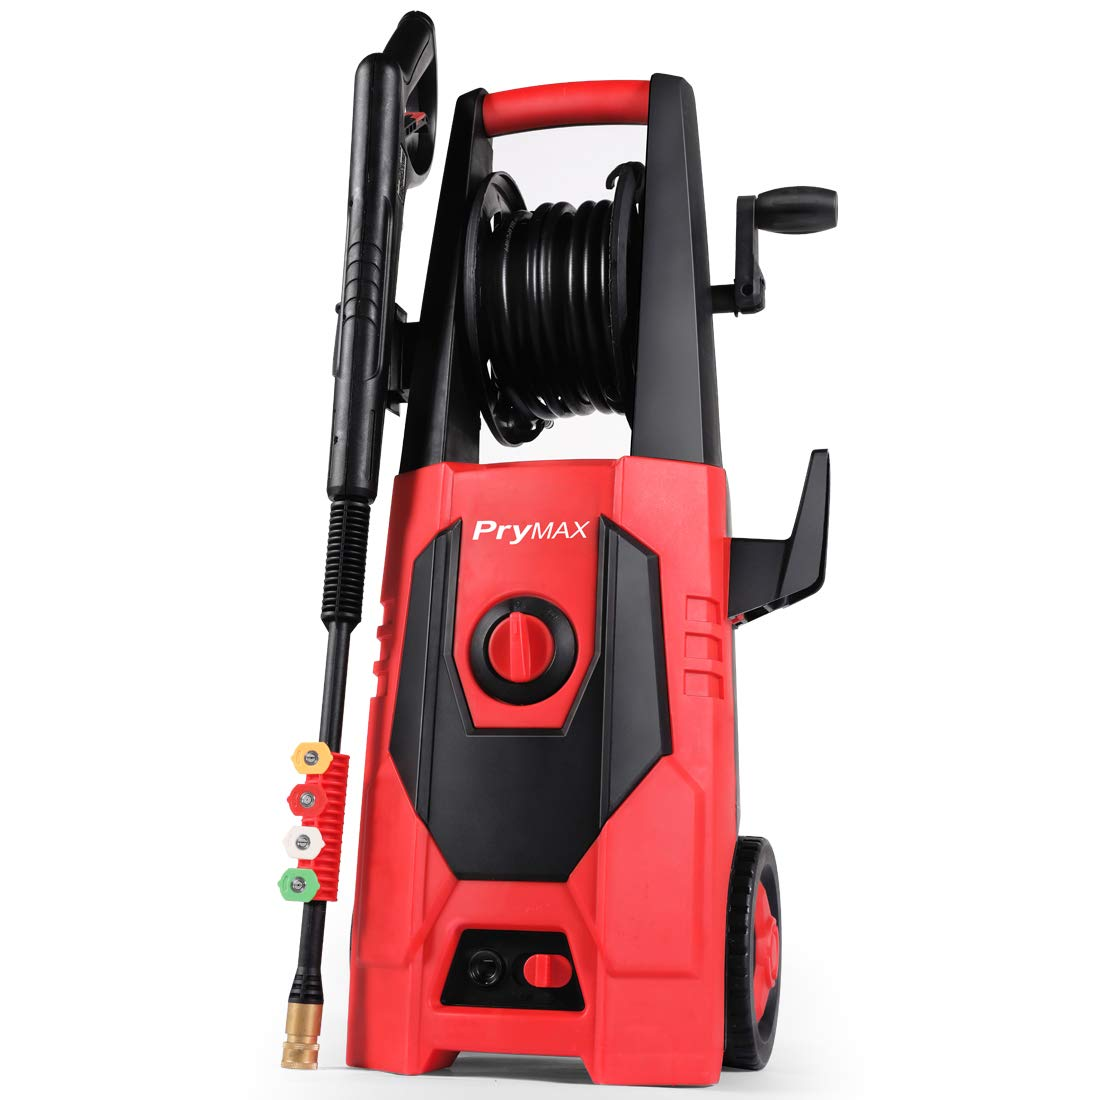 PRYMAX Pressure Washer 3000 PSI 1.85 GPM Car Electric Power Washer with Hose Reel and Interchangeable Nozzles, Red by PRYMAX